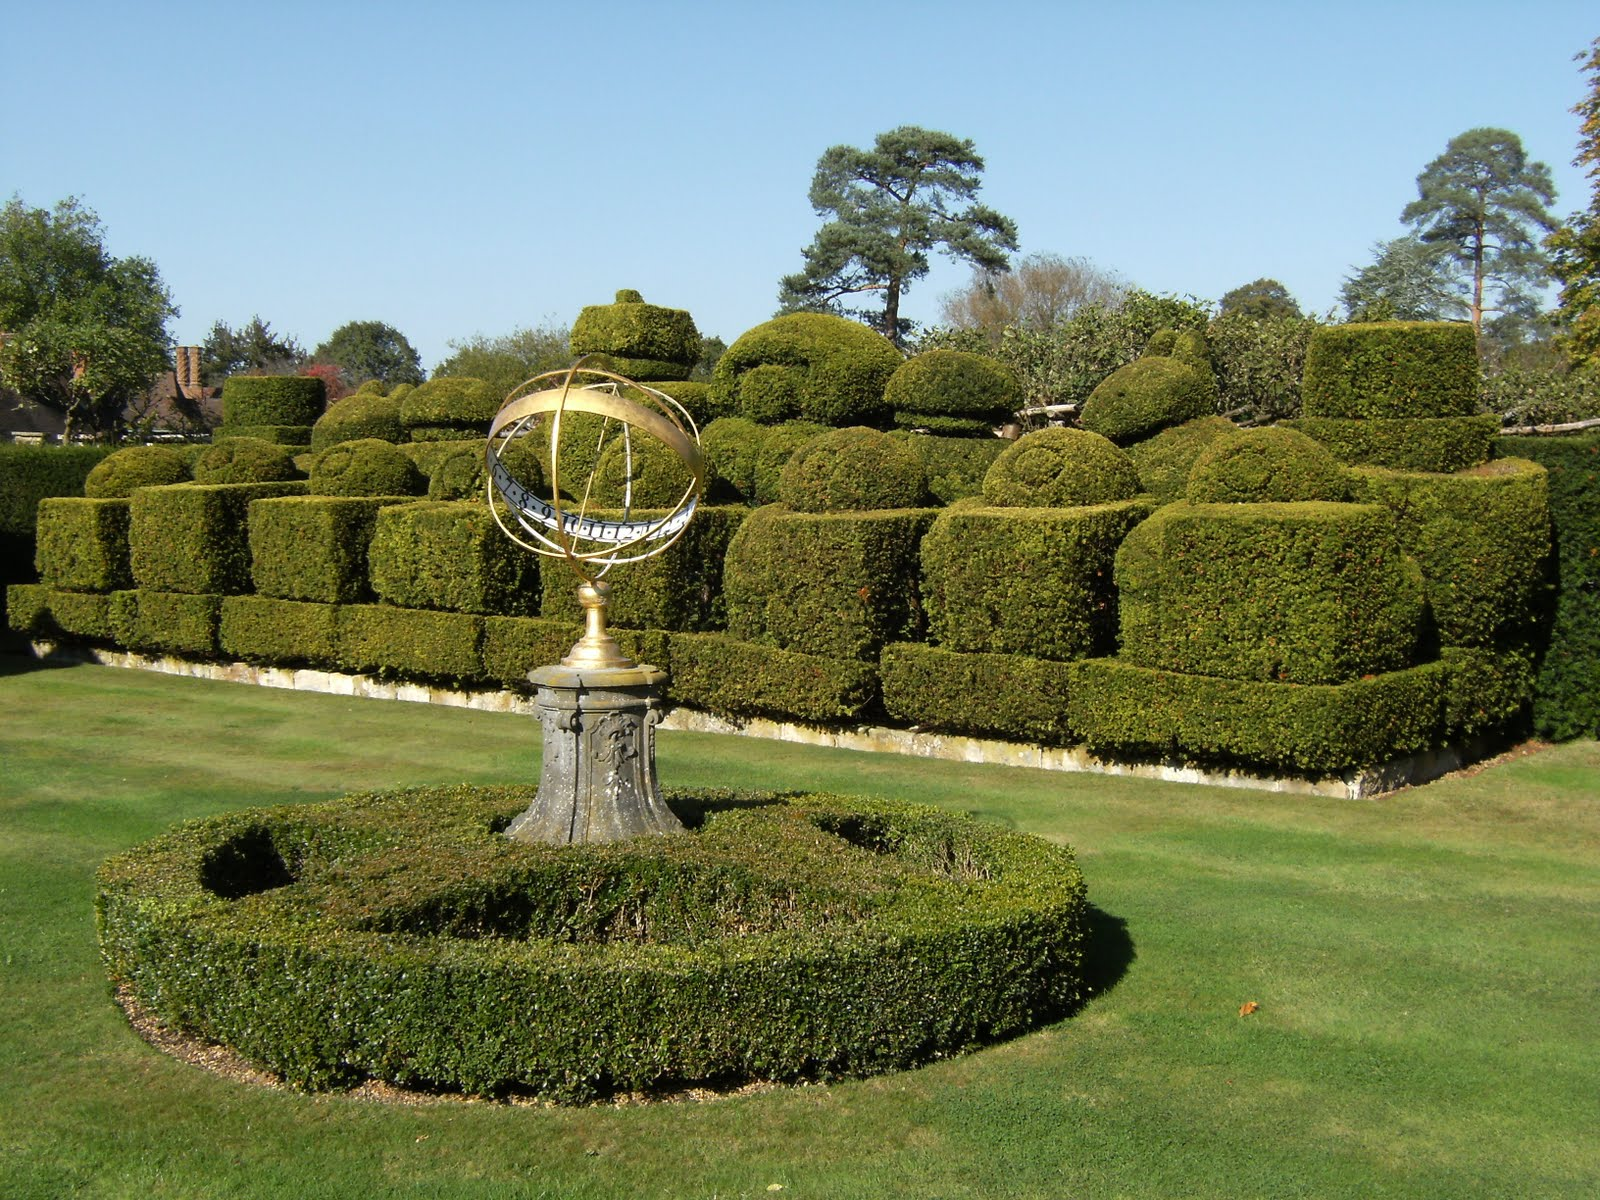 DSCF1974 Chess-set topiary in Hever Castle gardens